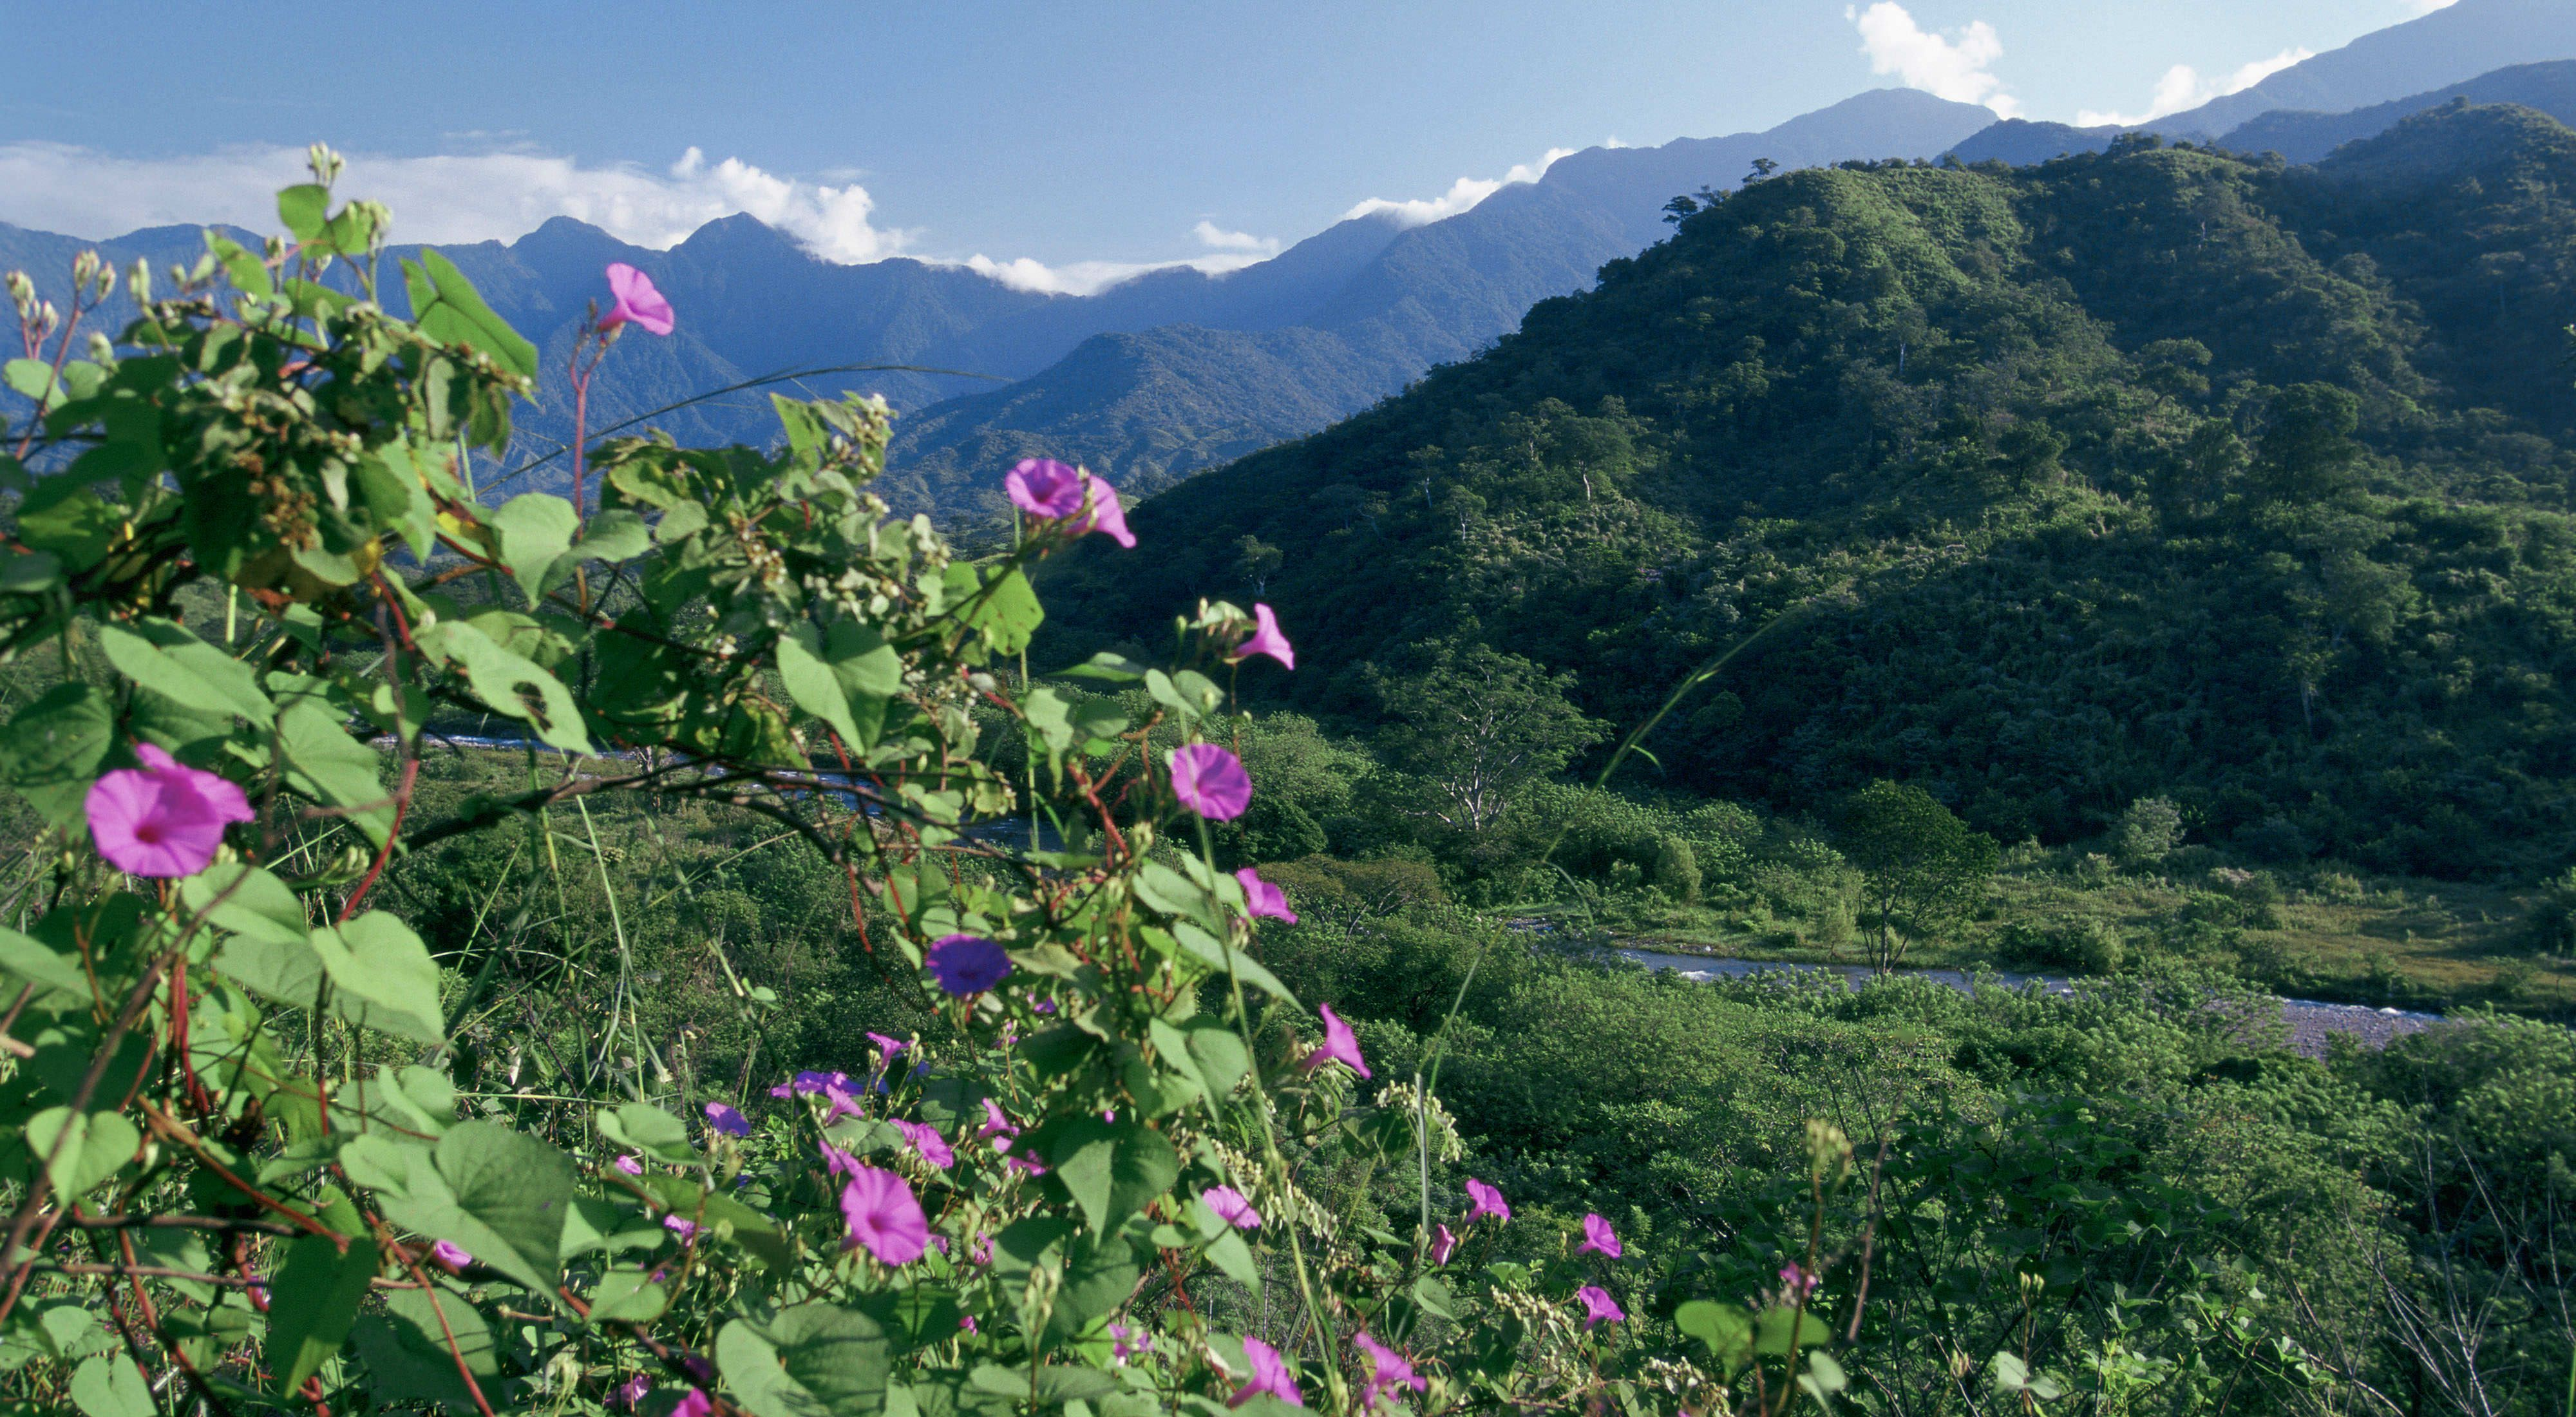 Flowers bloom in the foreground with lush forested moun